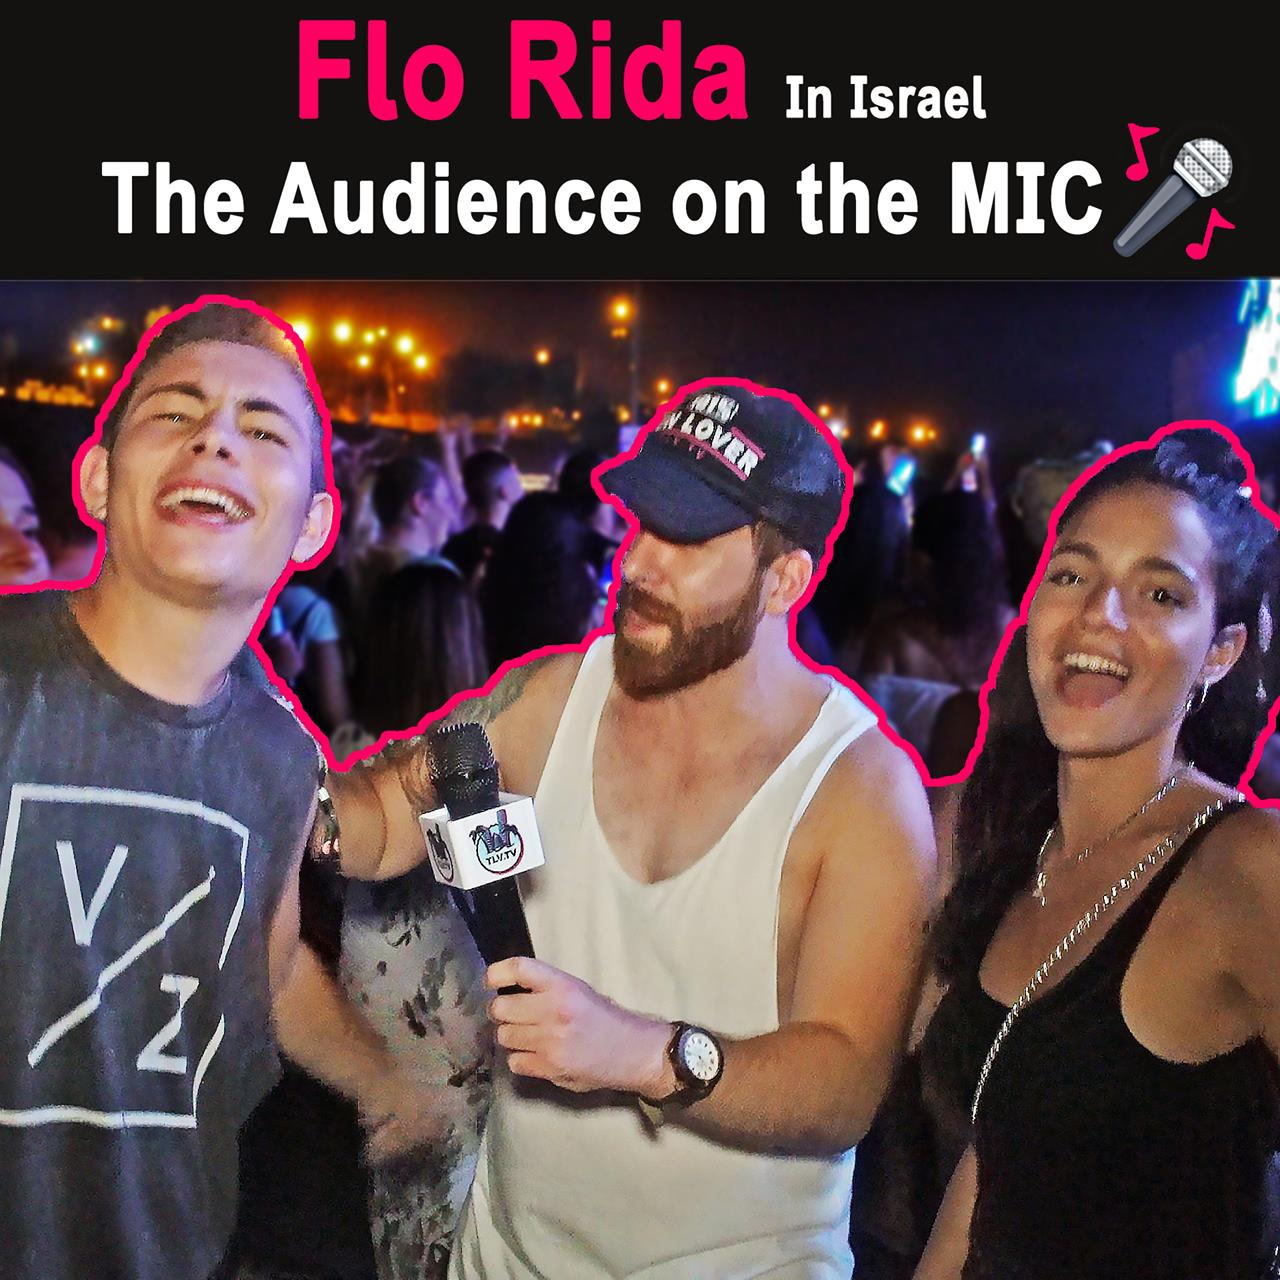 When You Give People the MIC @ Flo Rida Concert